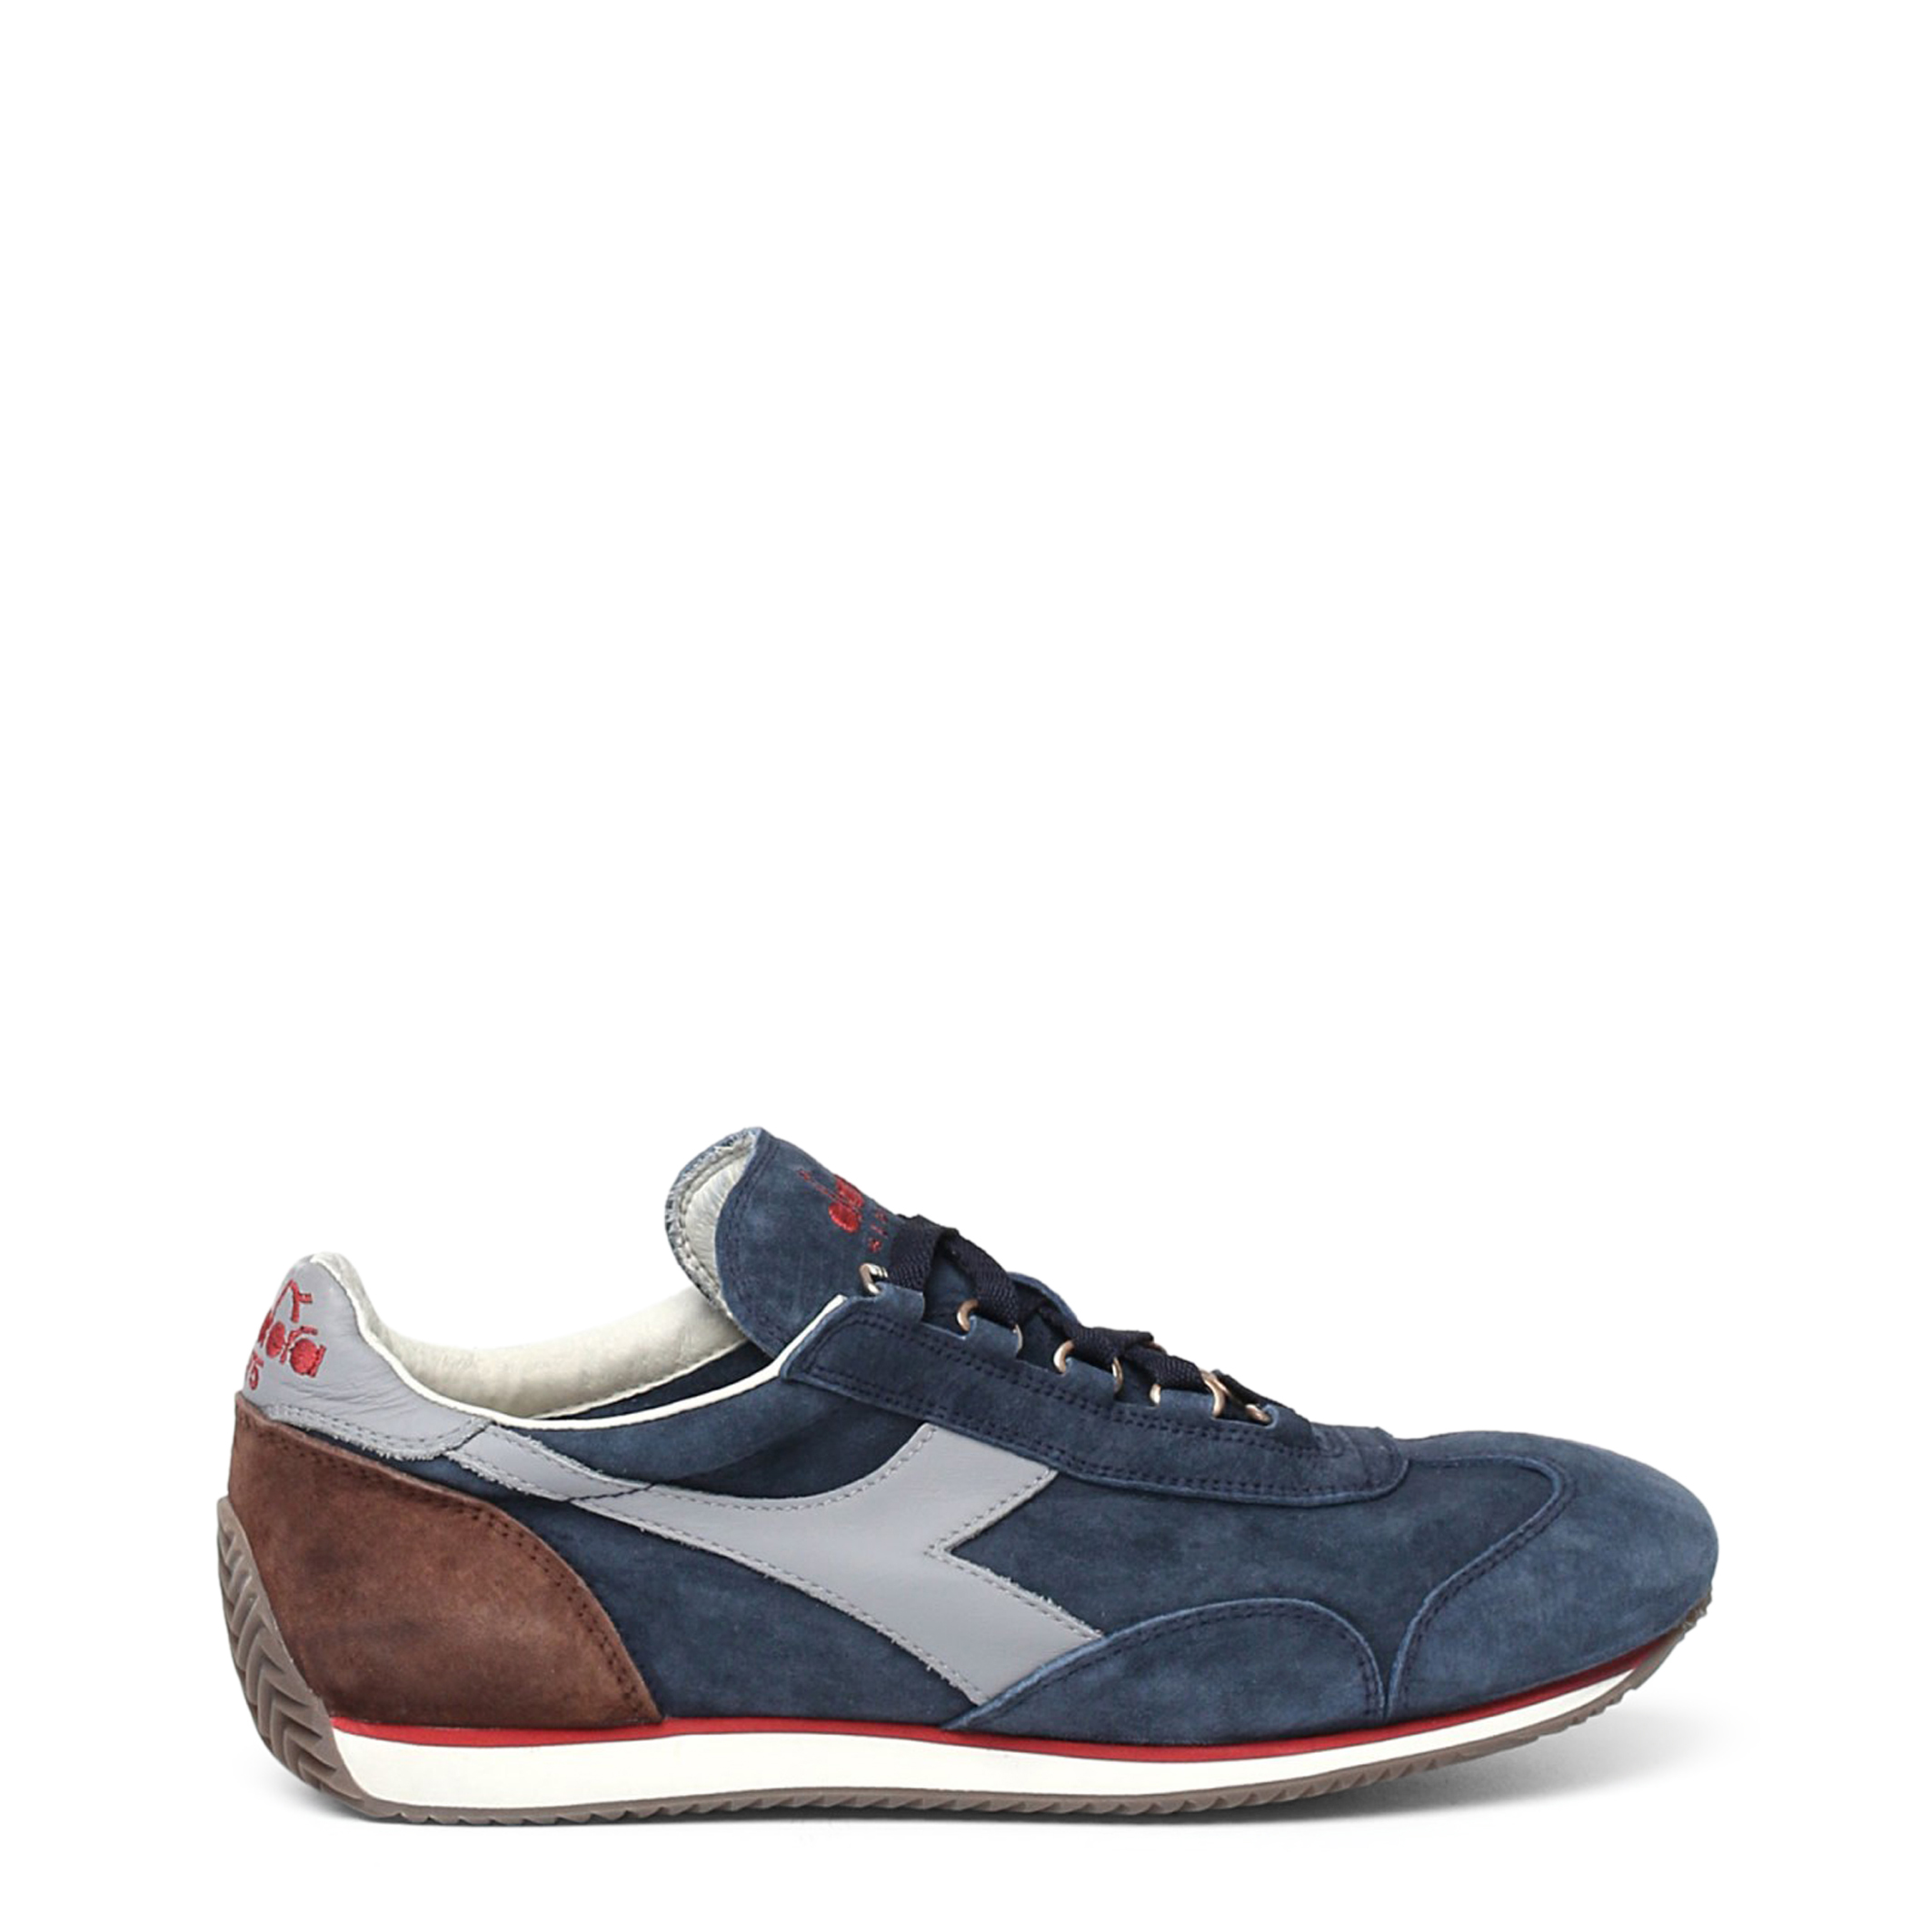 Details about Diadora Heritage EQUIPE_S_SW Men Sneakers Blue (UK size)